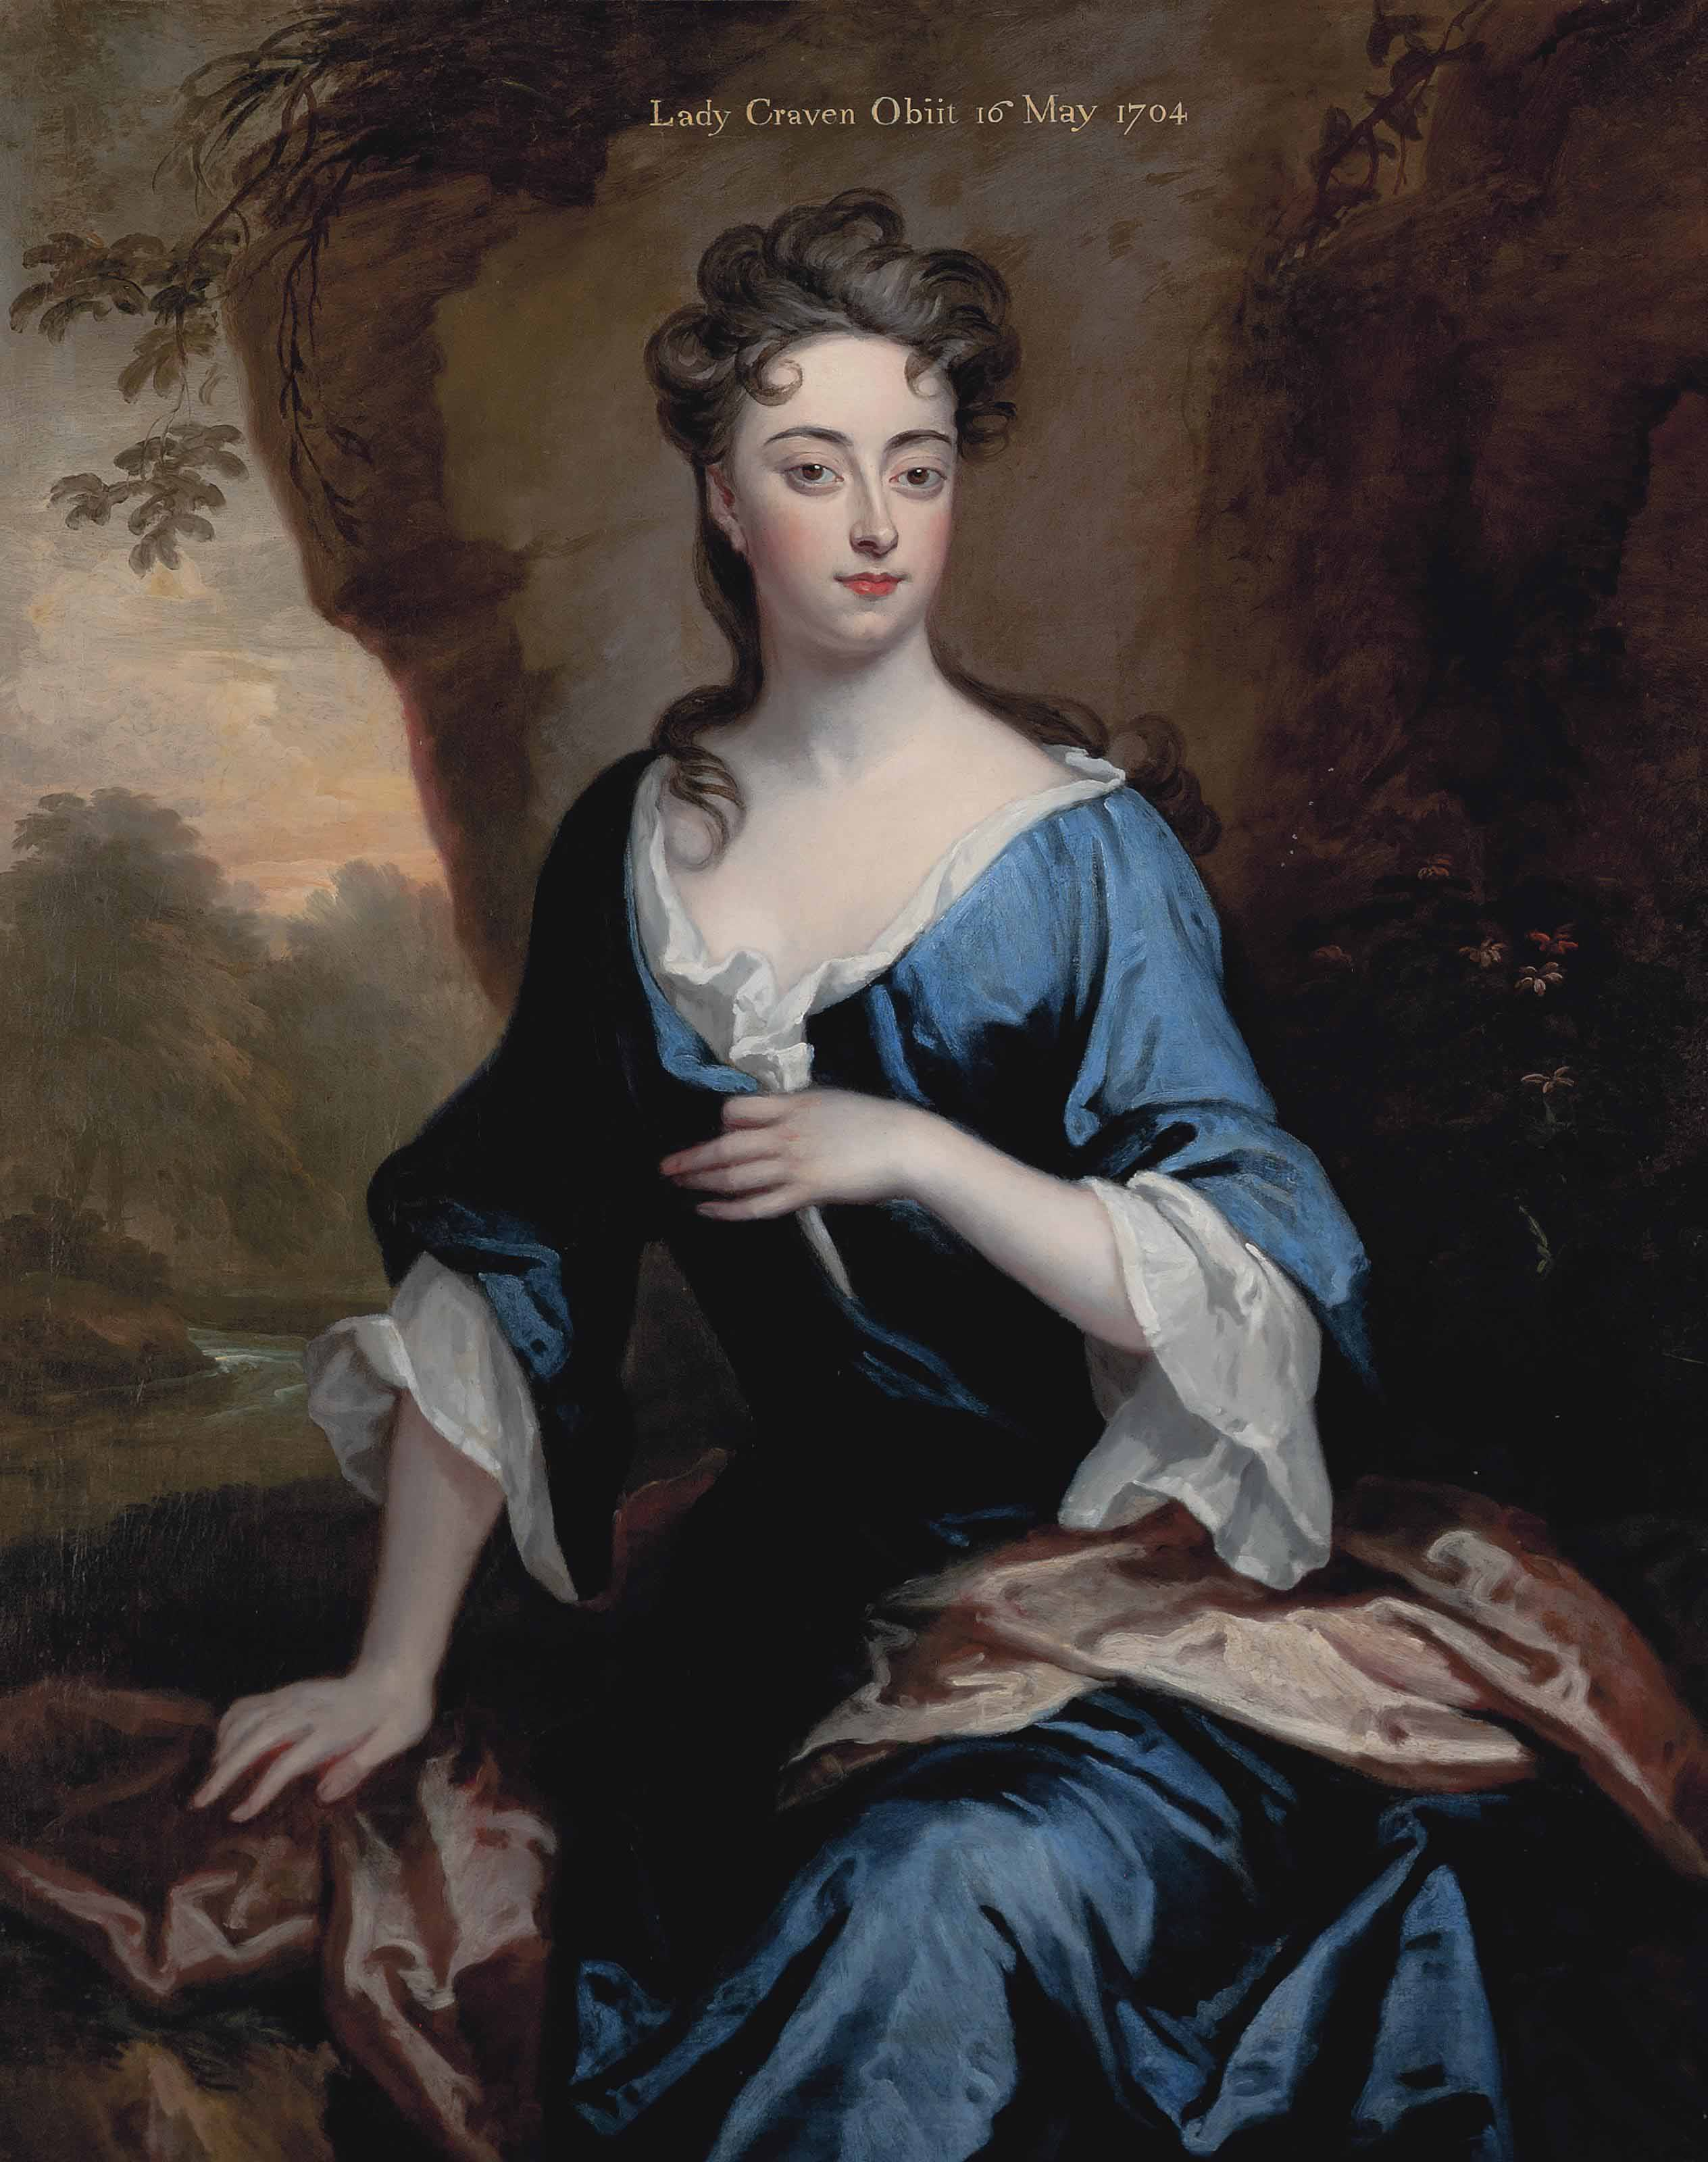 Portrait of Elizabeth Skipwith, Lady Craven (1679-1704), three-quarter-length, in a blue dress and red shawl, a wooded river landscape beyond